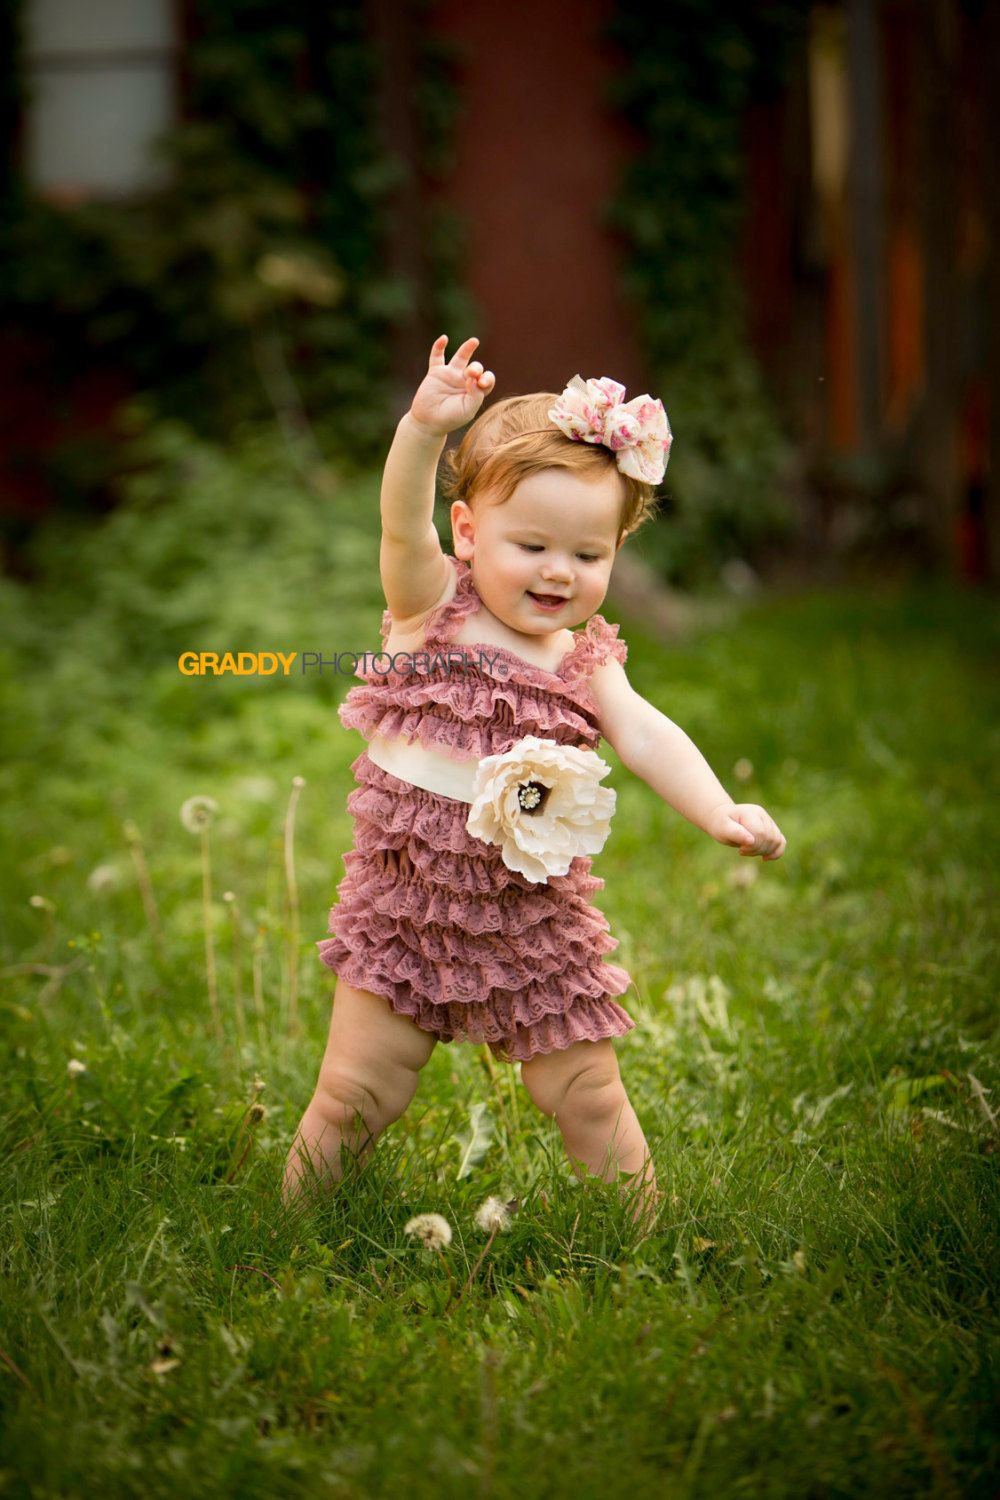 c52d82a8ac42 Baby Lace Vintage Romper - Dusty rose colored lace romper with cream satin  sash   a creamy beige handmade silk flower